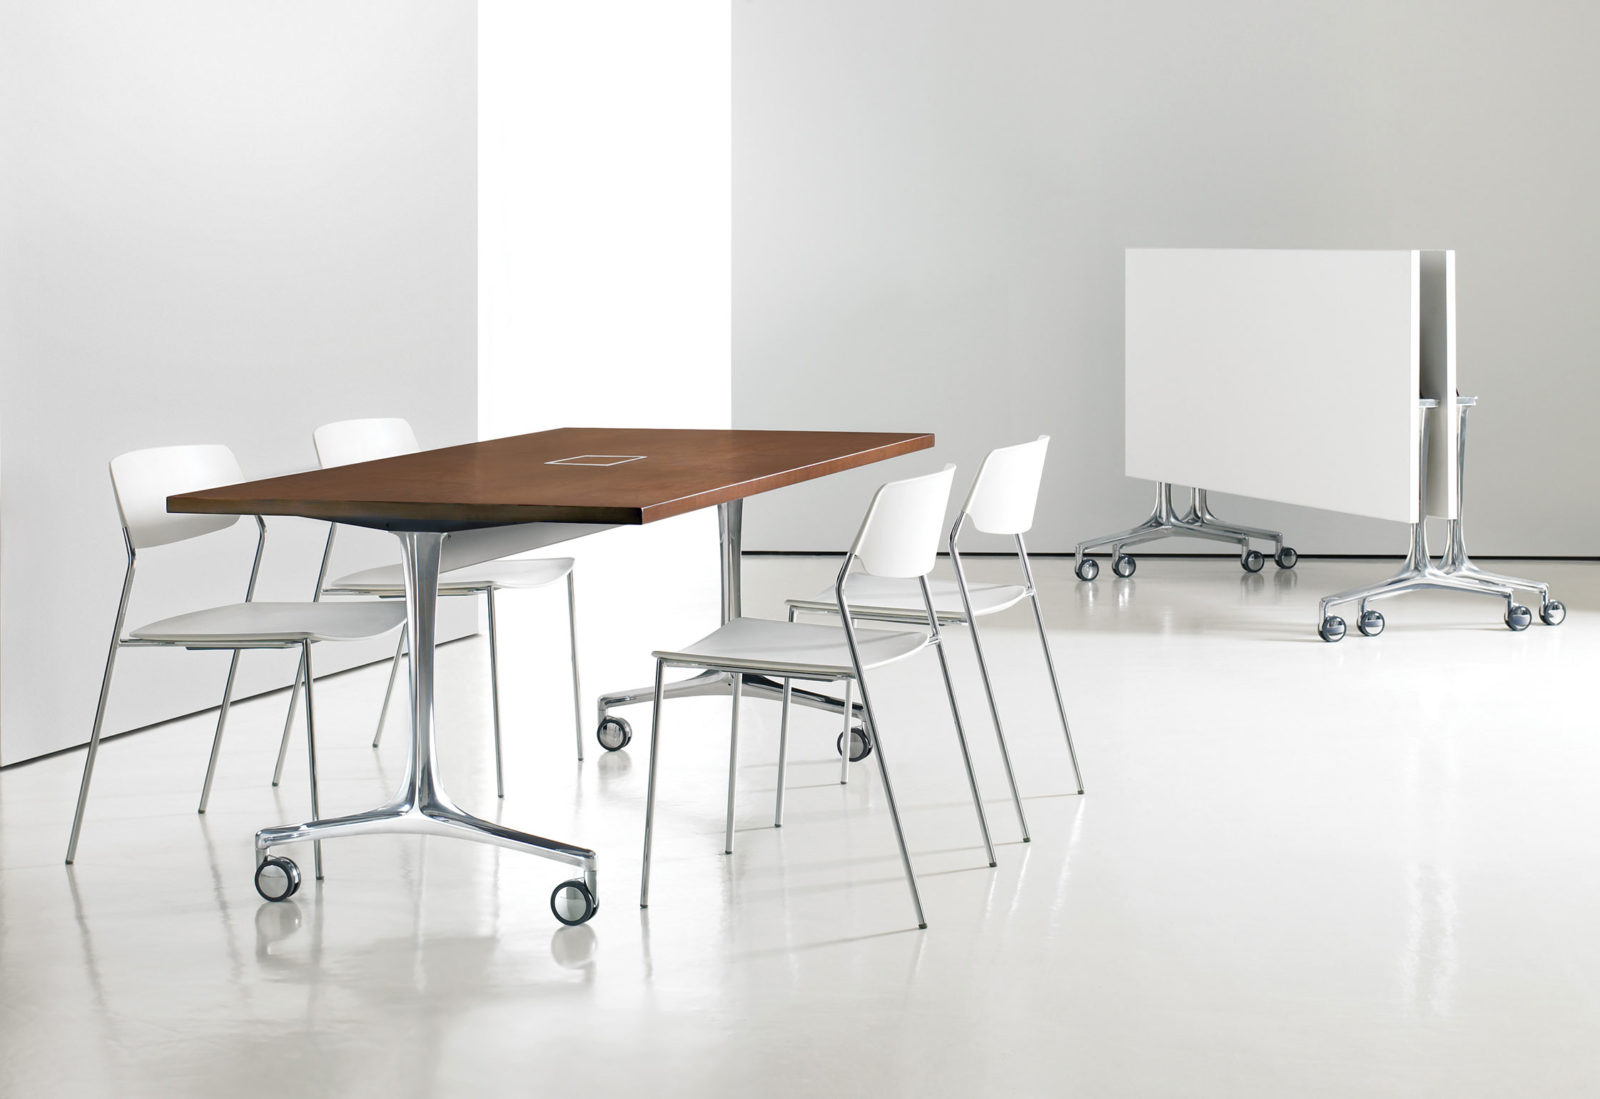 Serif Task Table for Bernhardt Design, 2011